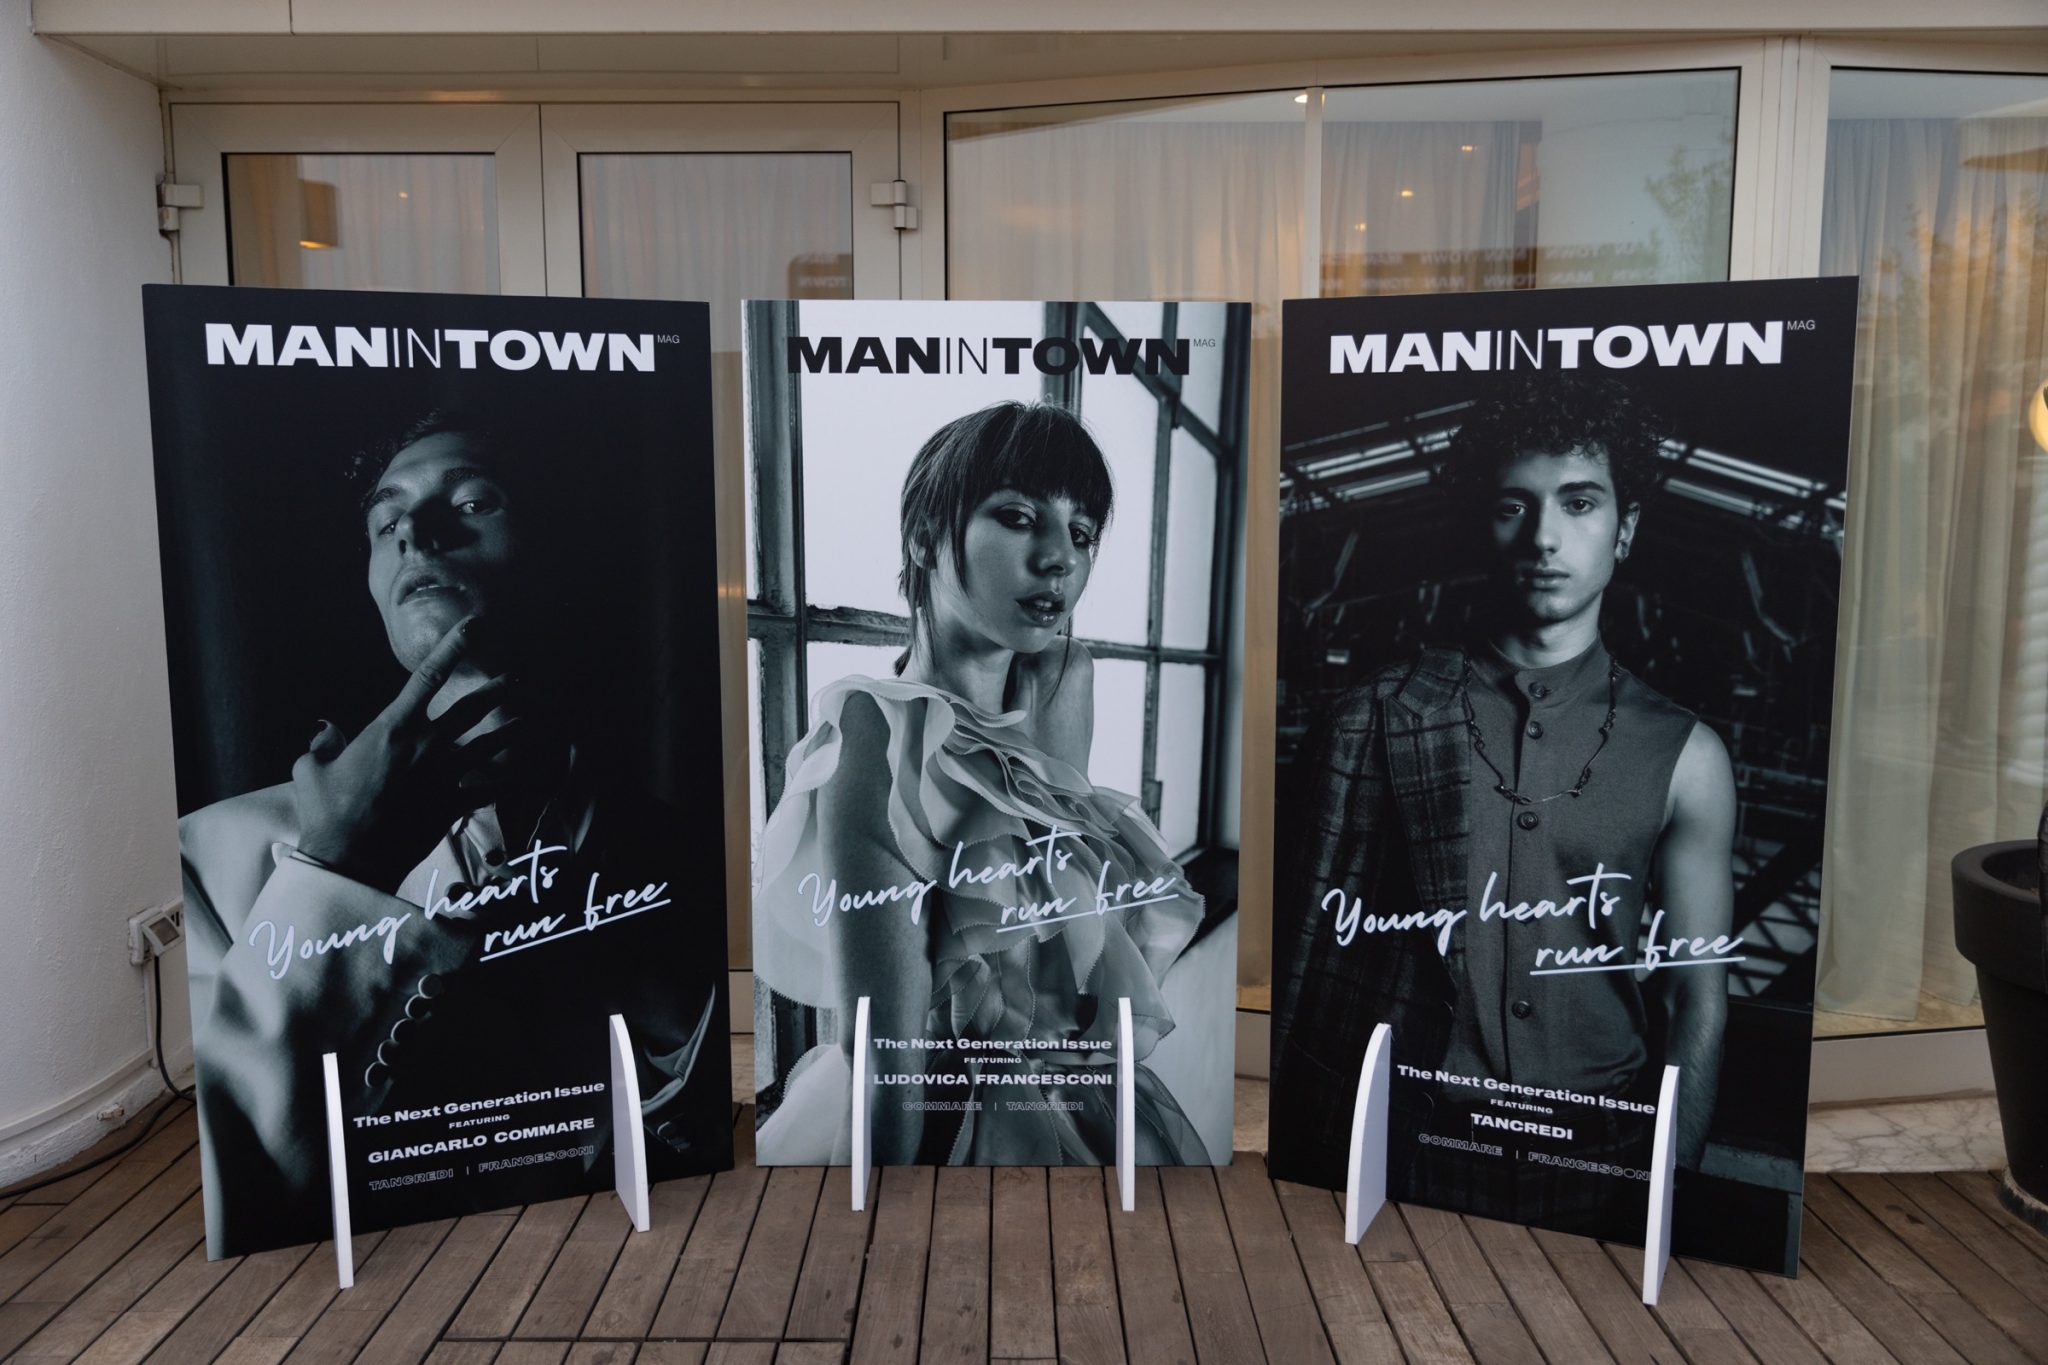 The new face of MANINTOWN